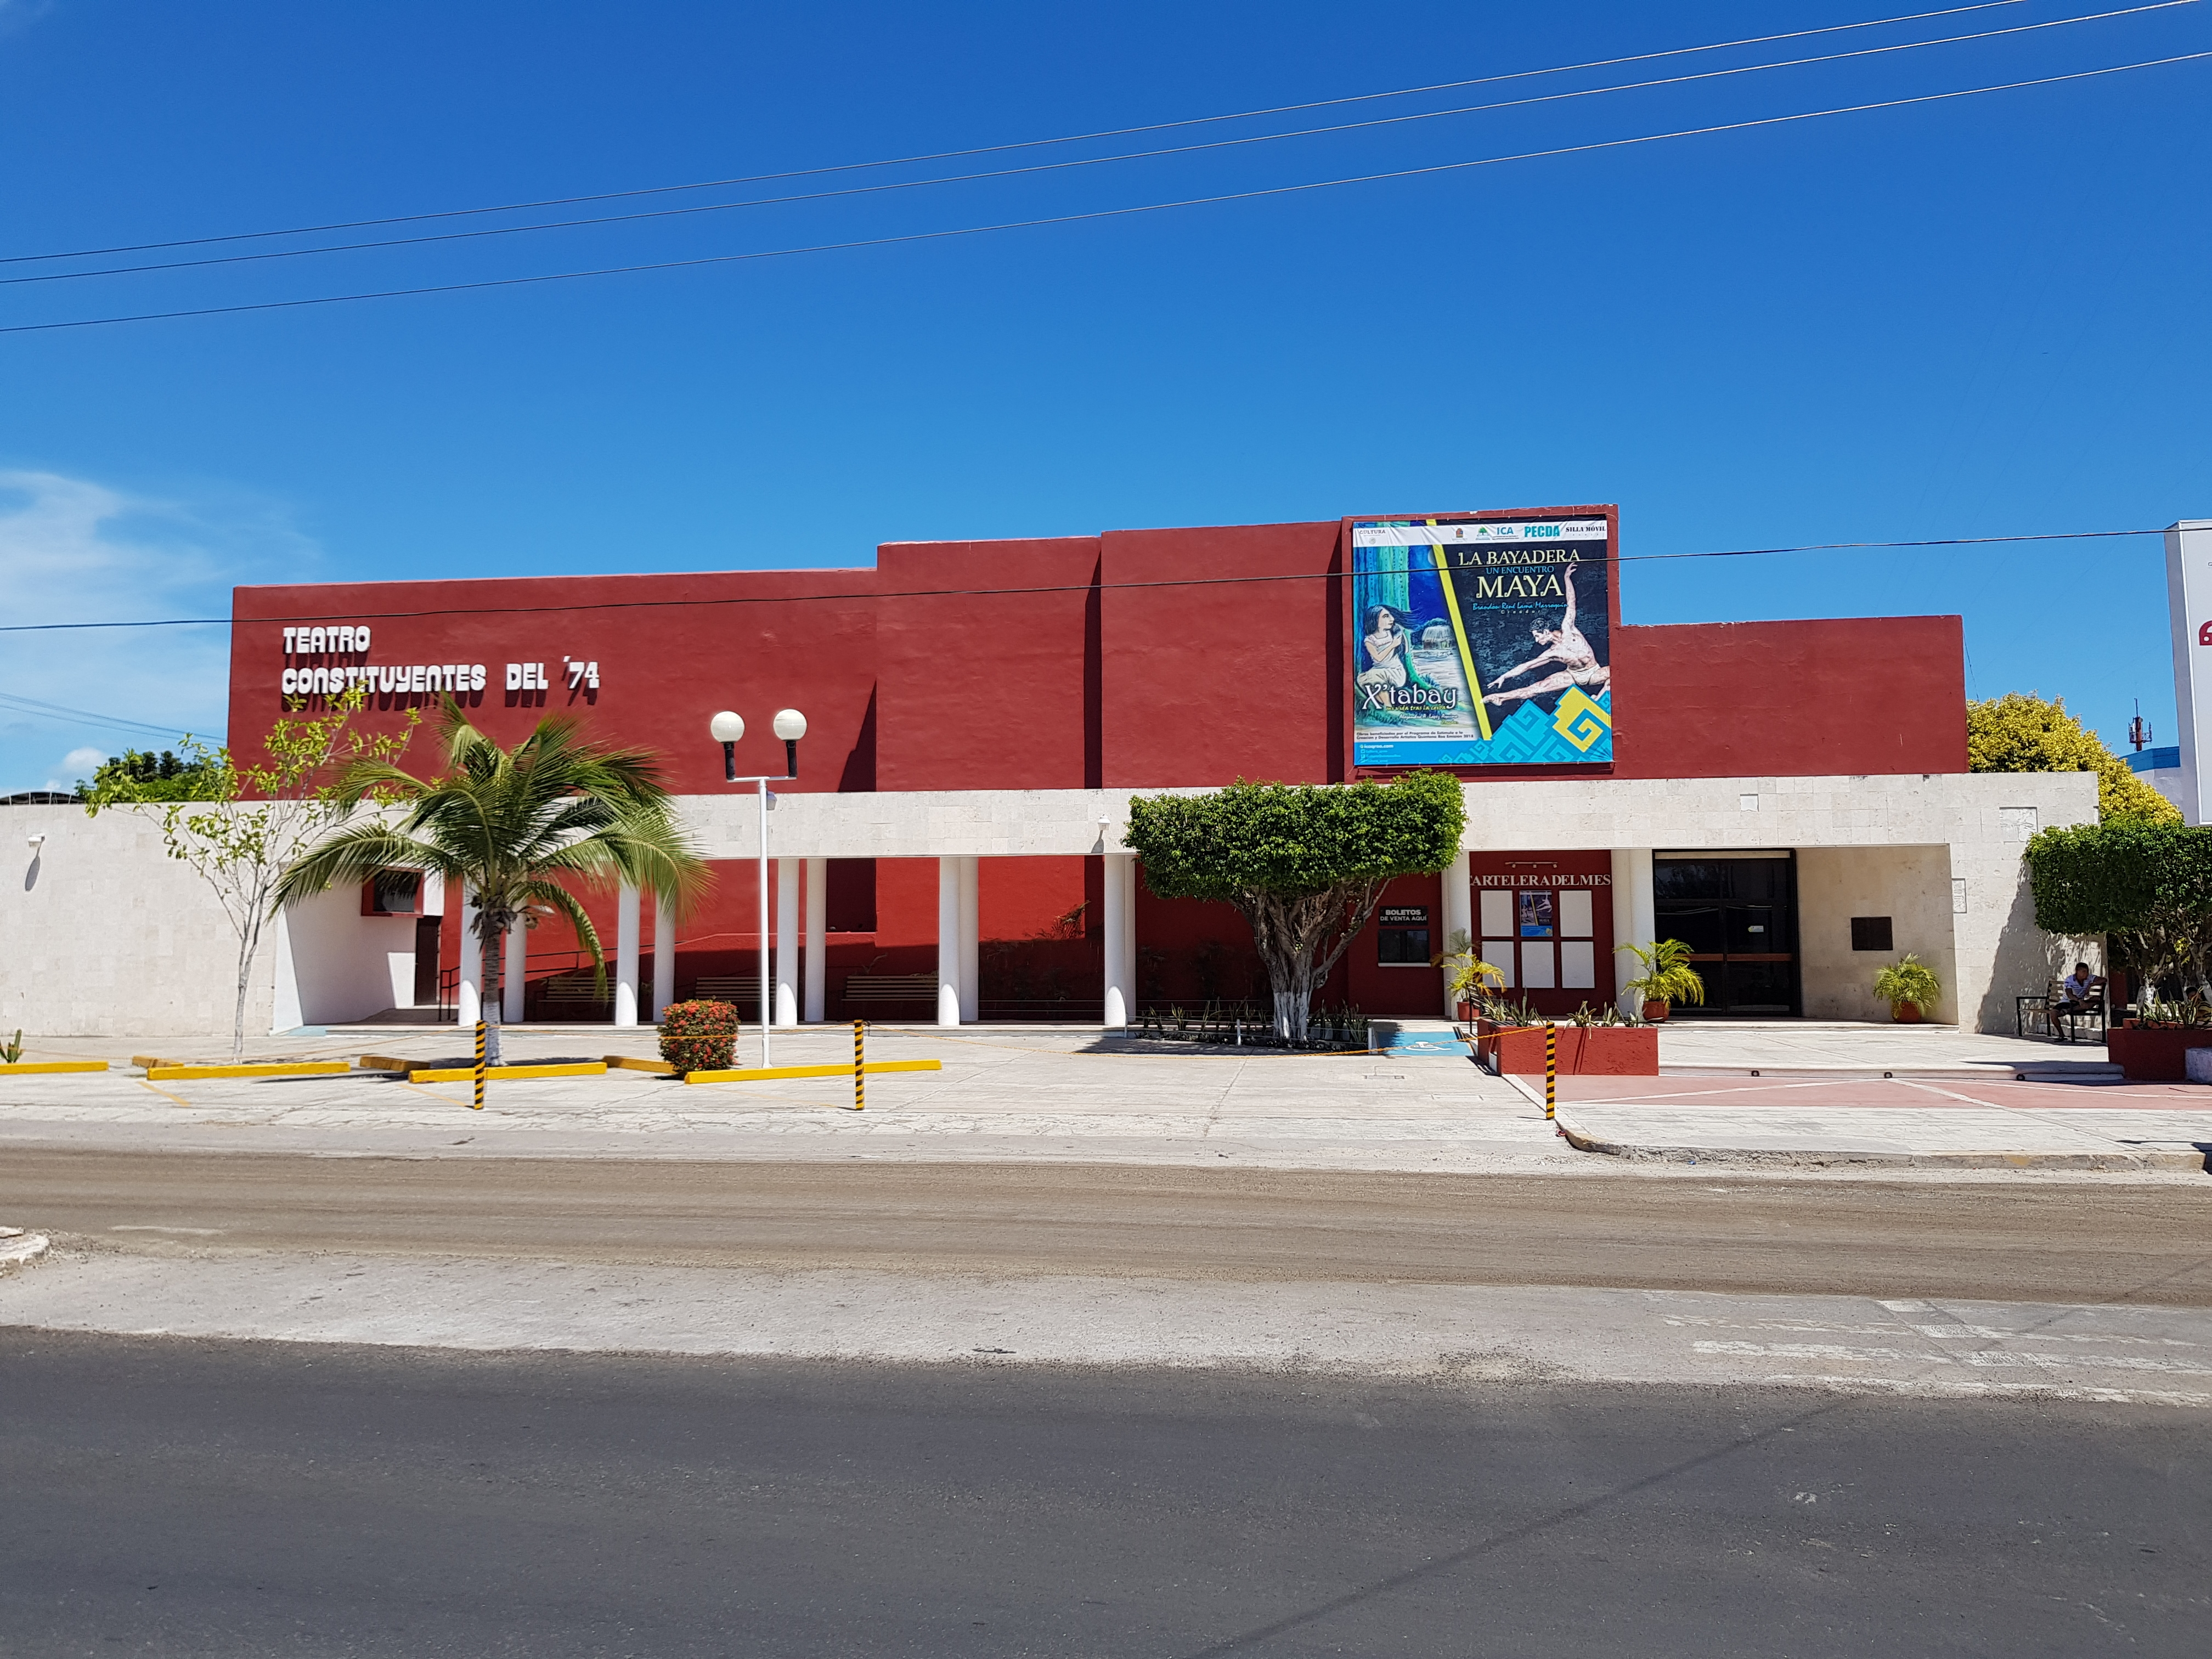 Theater of the City and the Constitution of Quintana Roo Marker